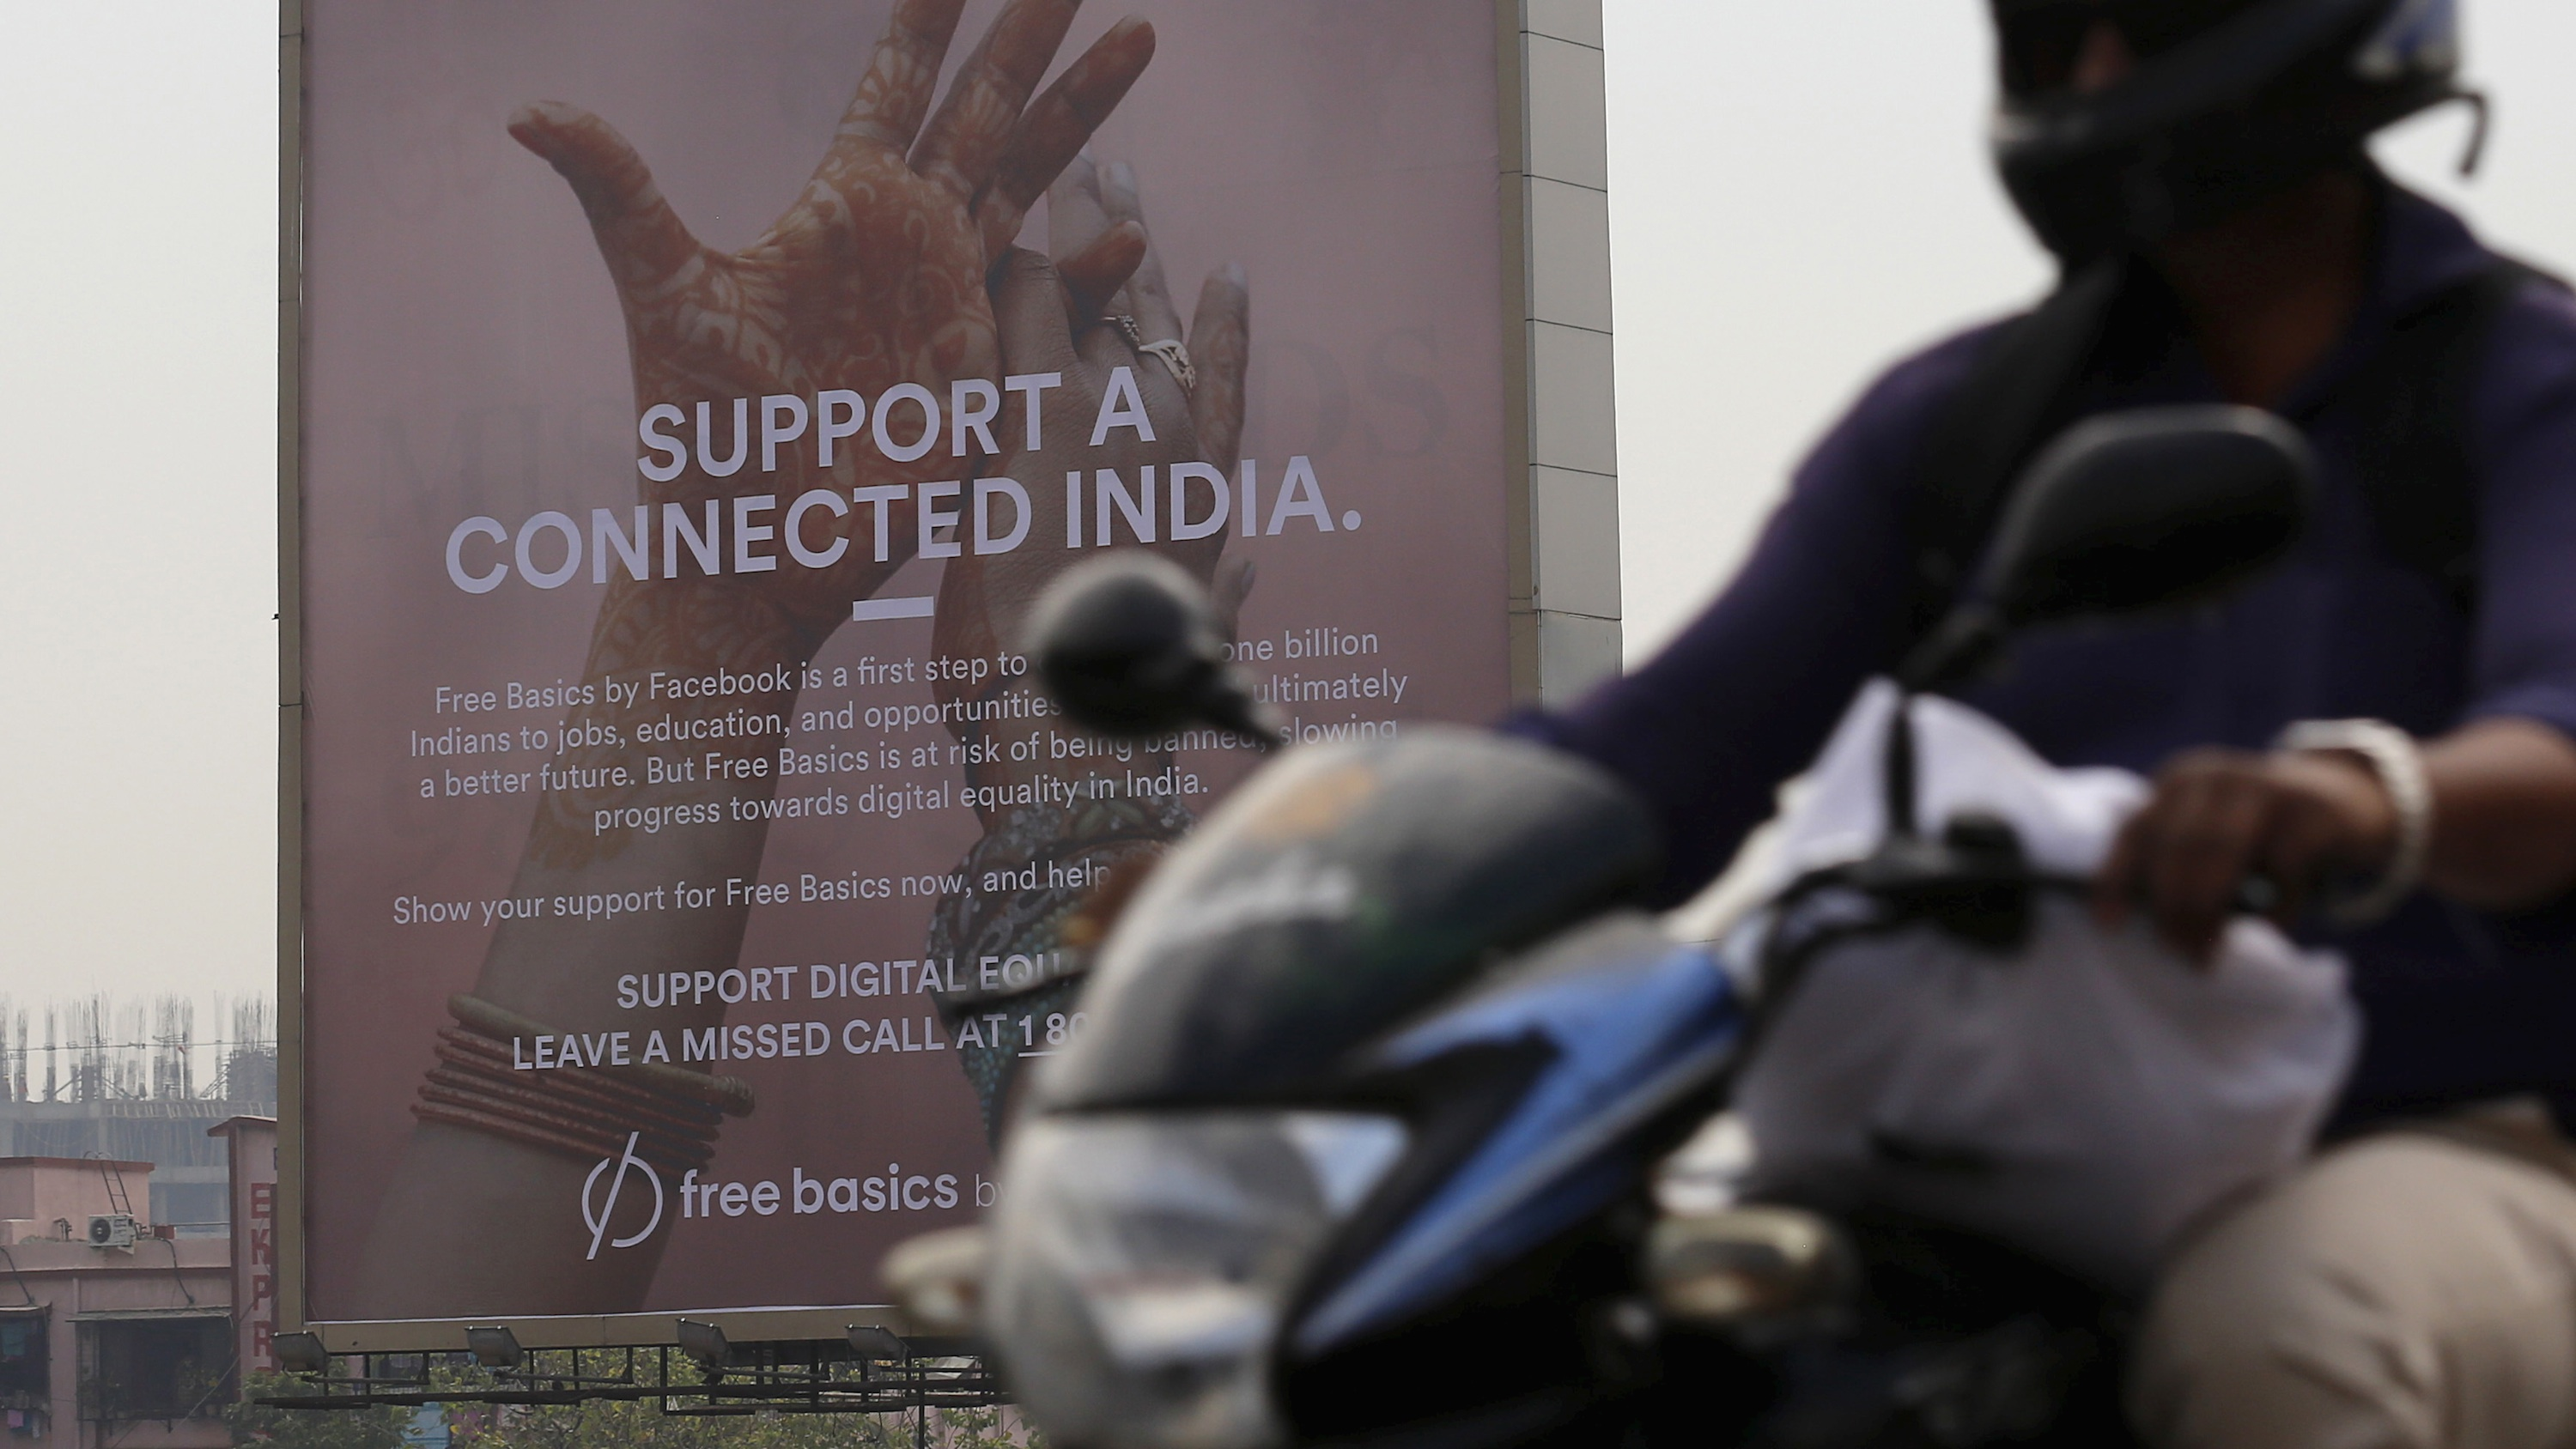 A billboard displays Facebook's ill-fated Free Basics internet program in Mumbai, India.